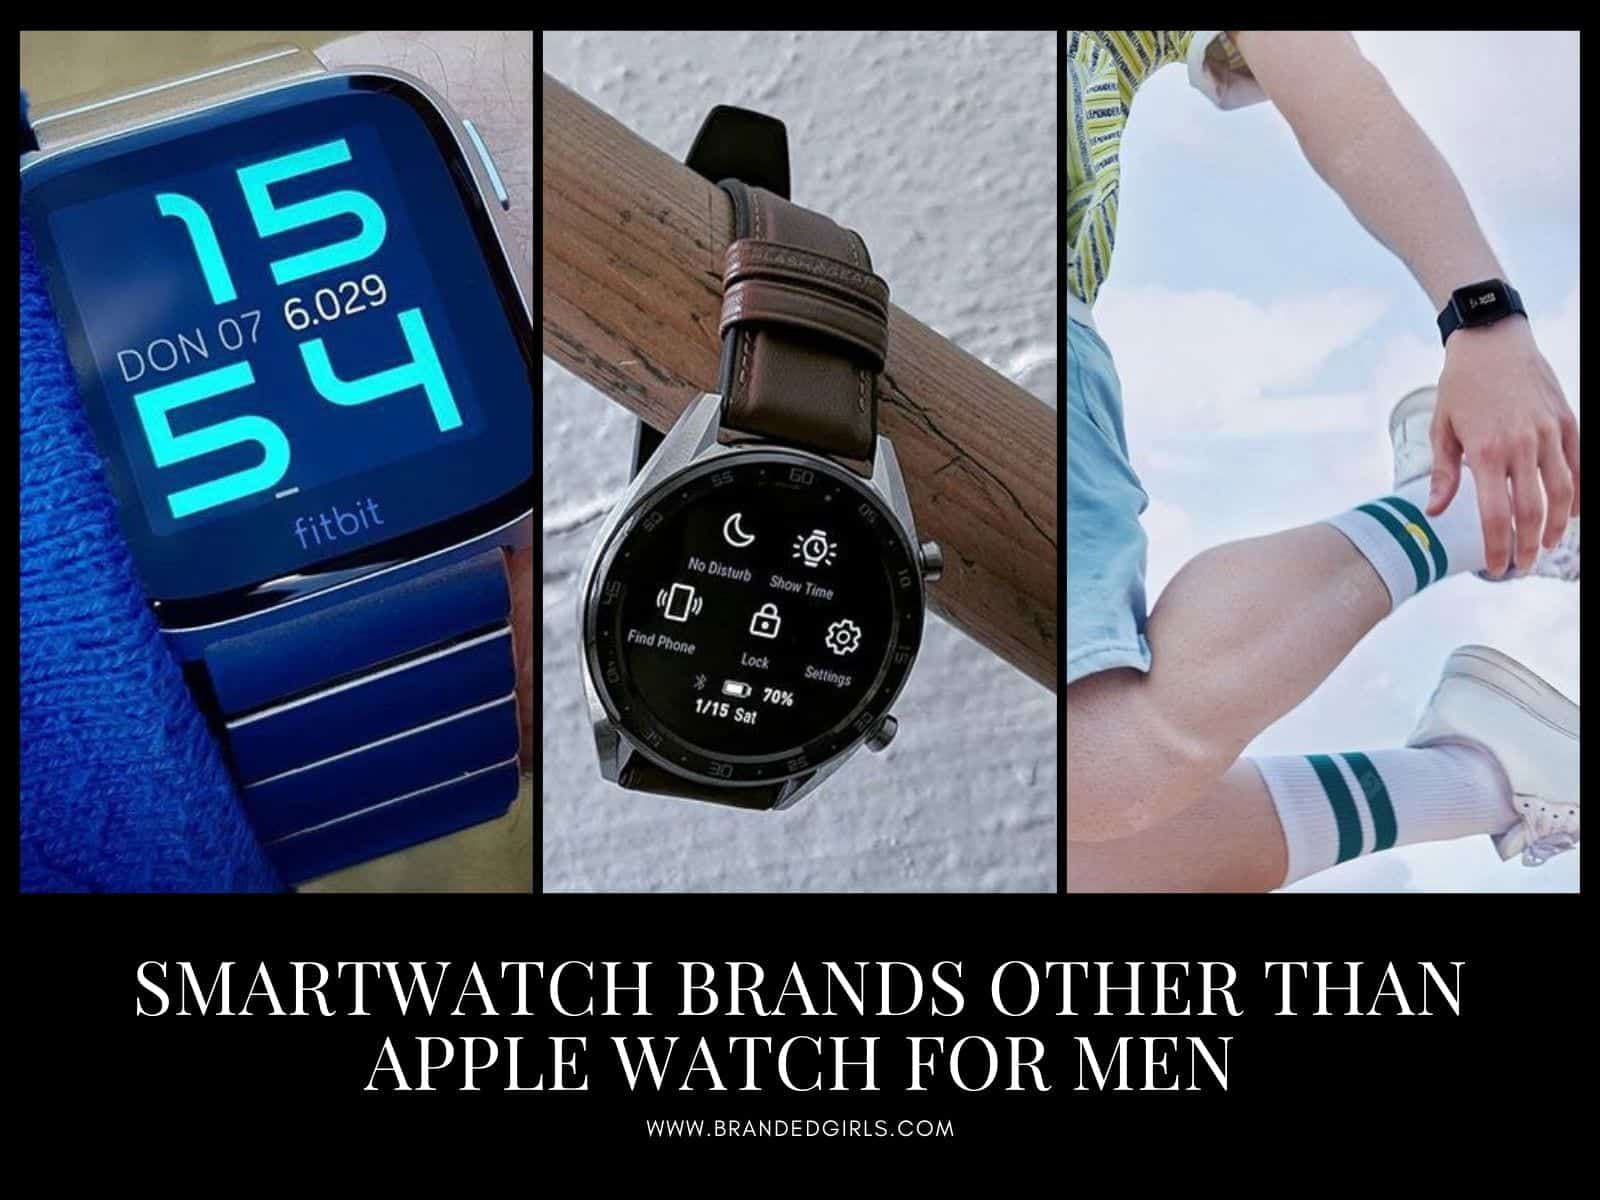 Smartwatch-Brands-Other-Than-Apple-Watch-For-Men Top 10 Smartwatch Brands Other Than Apple Watch